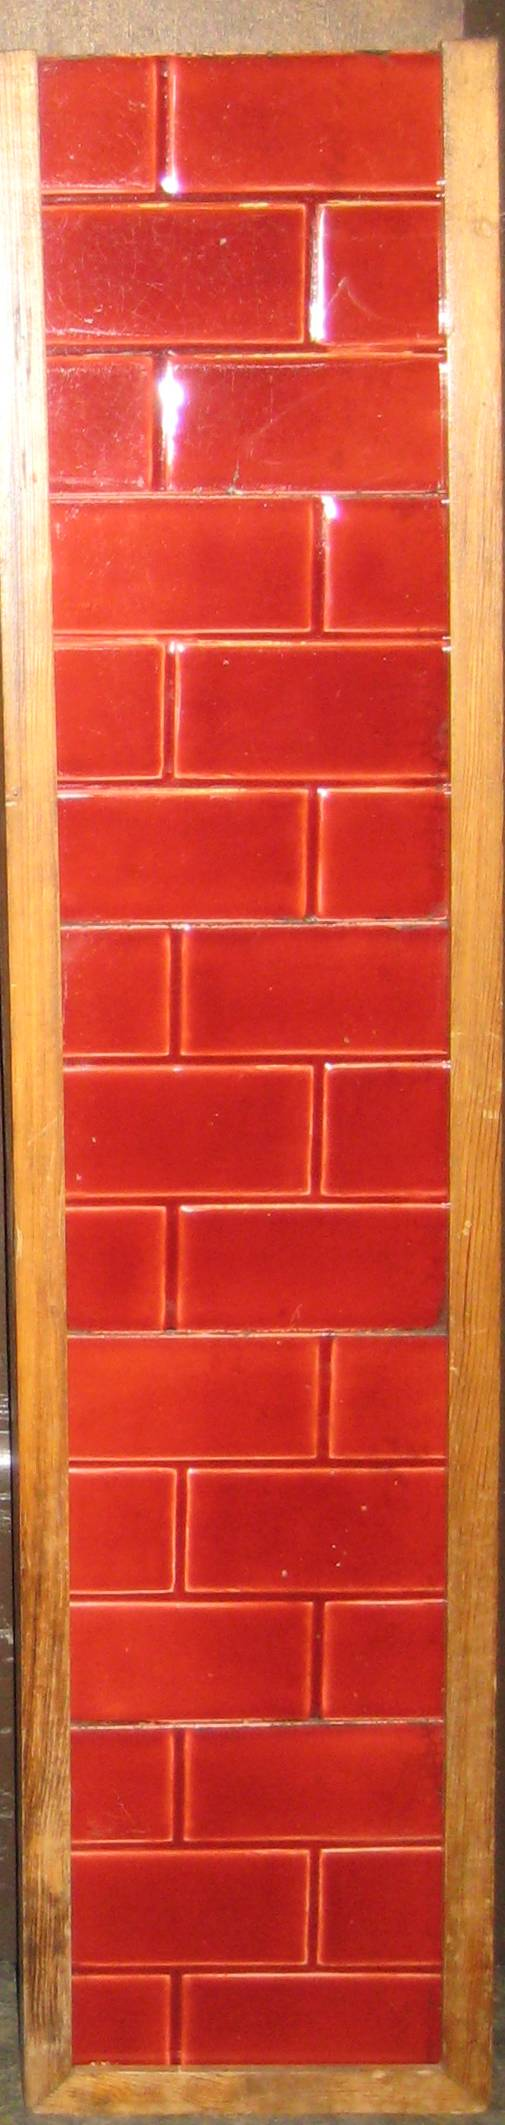 Antique Red Tile set